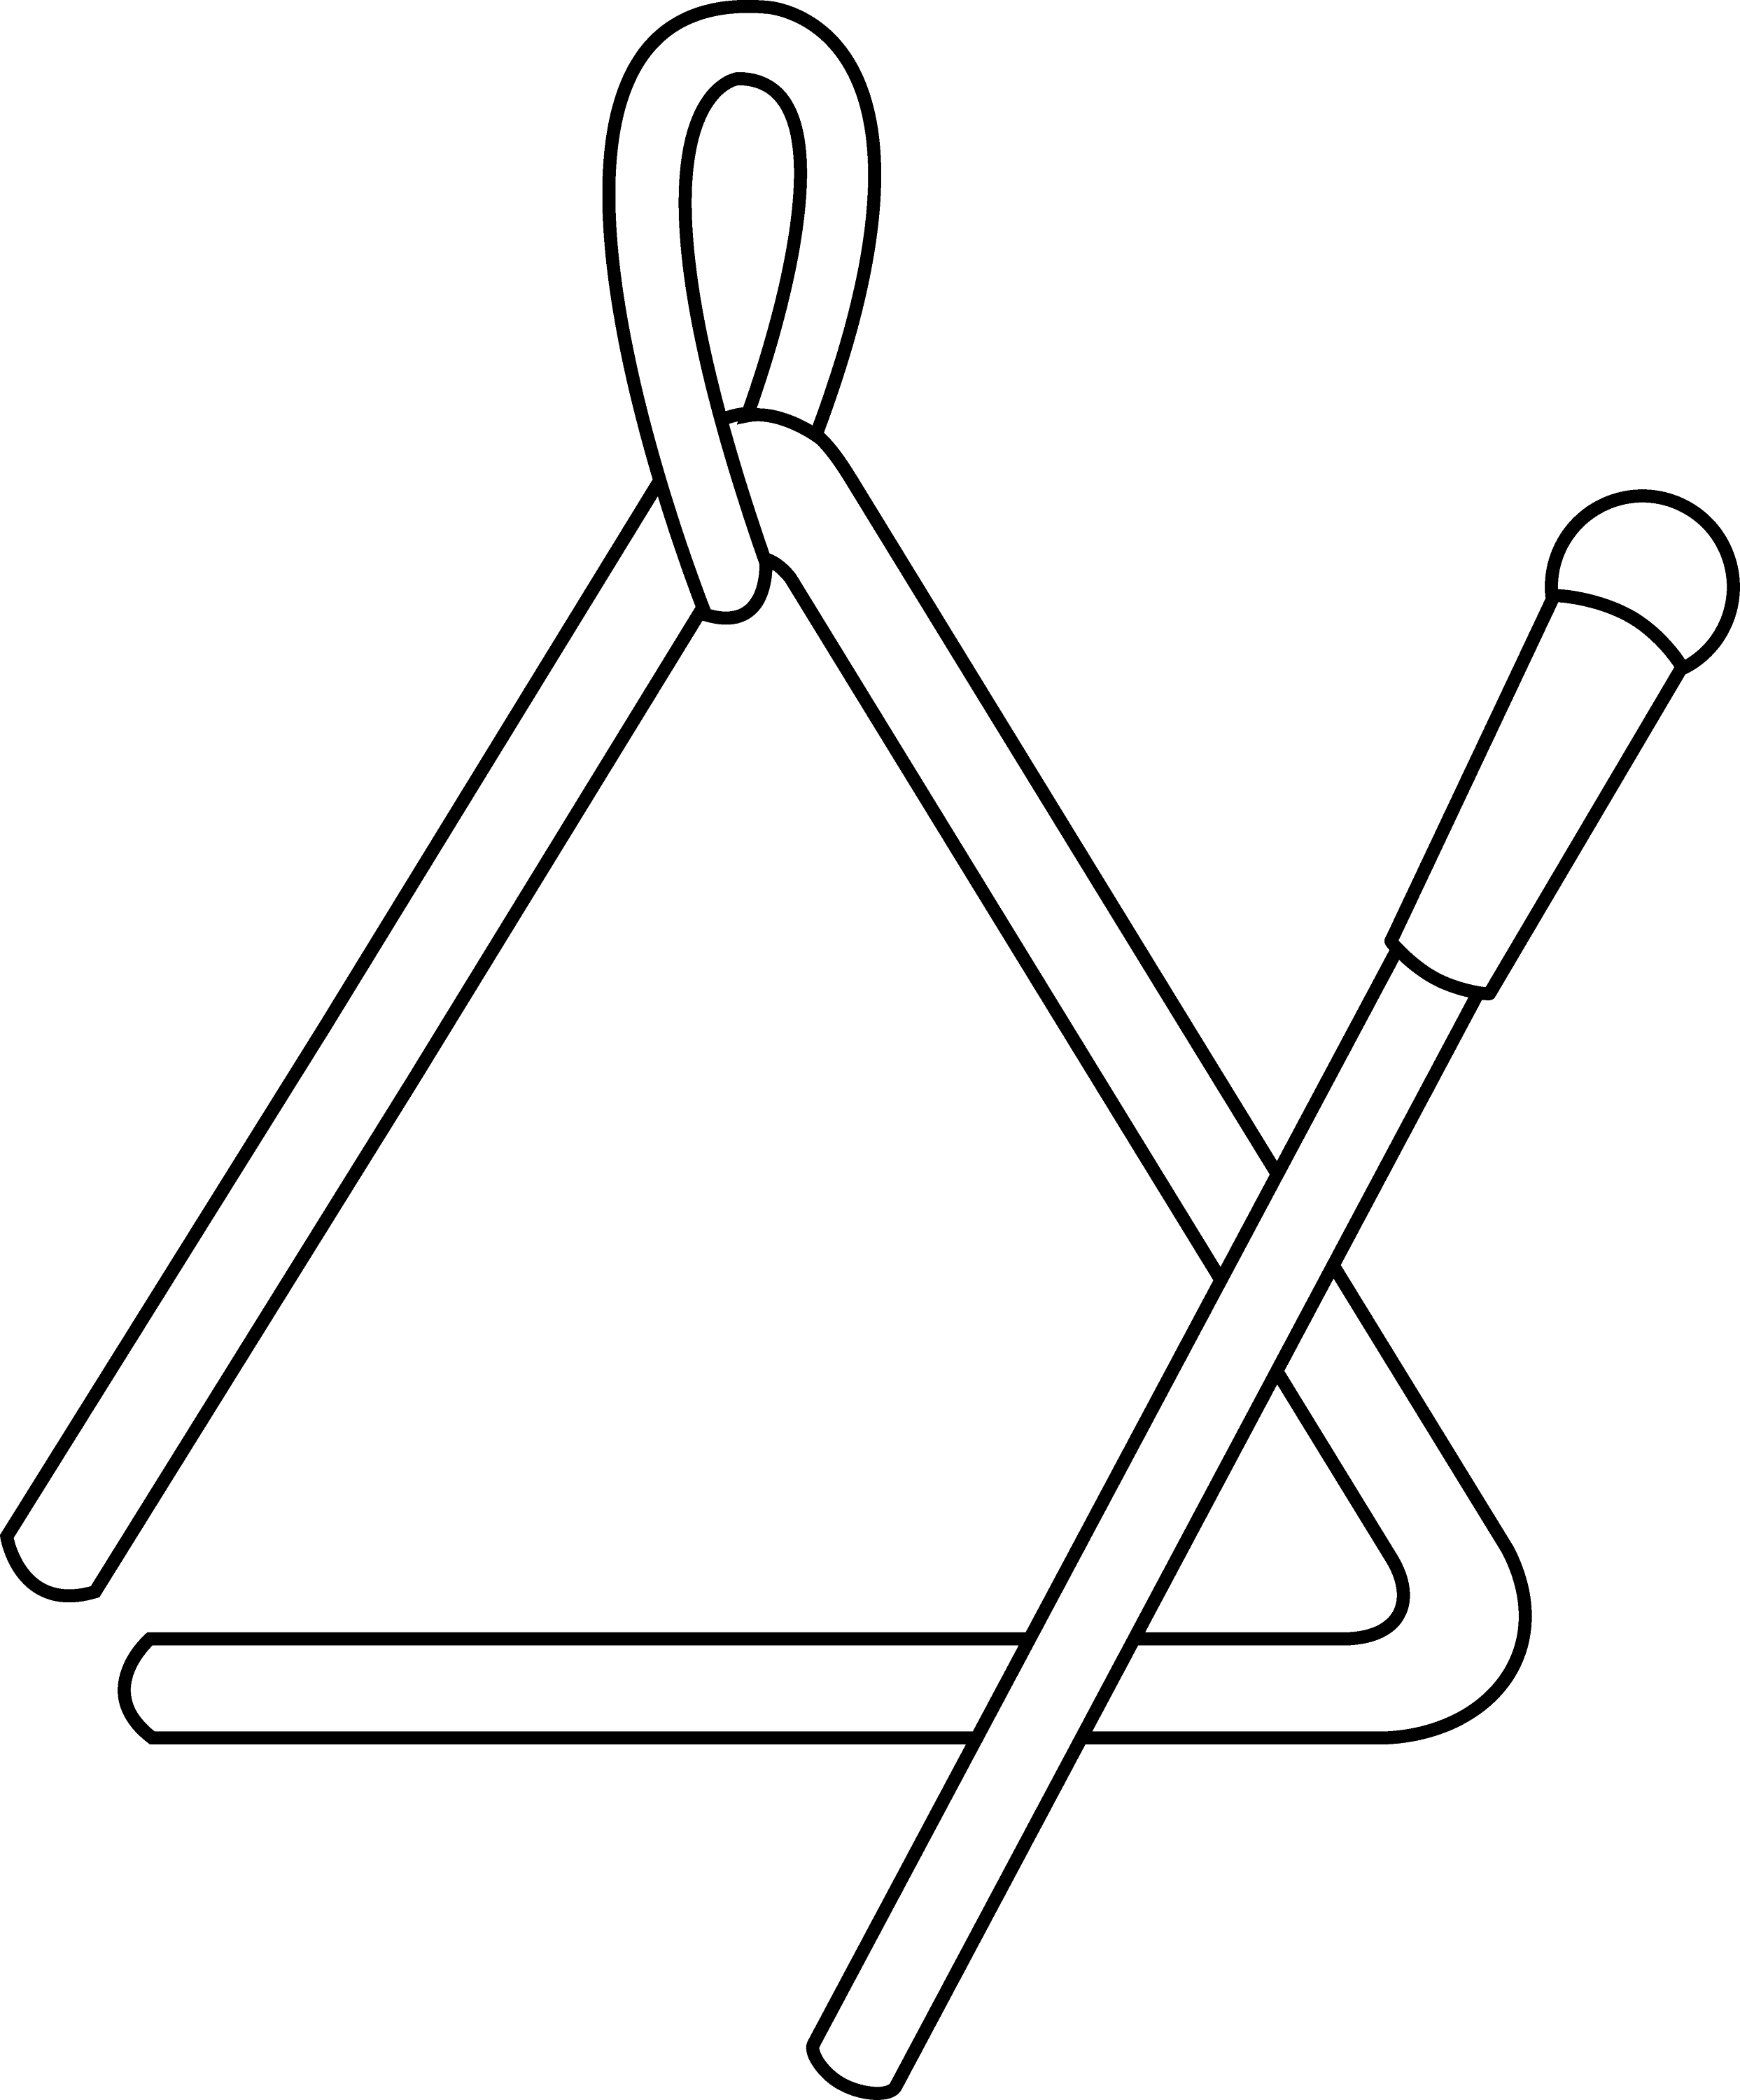 triangle instrument line art - Triangle Instrument Coloring Page